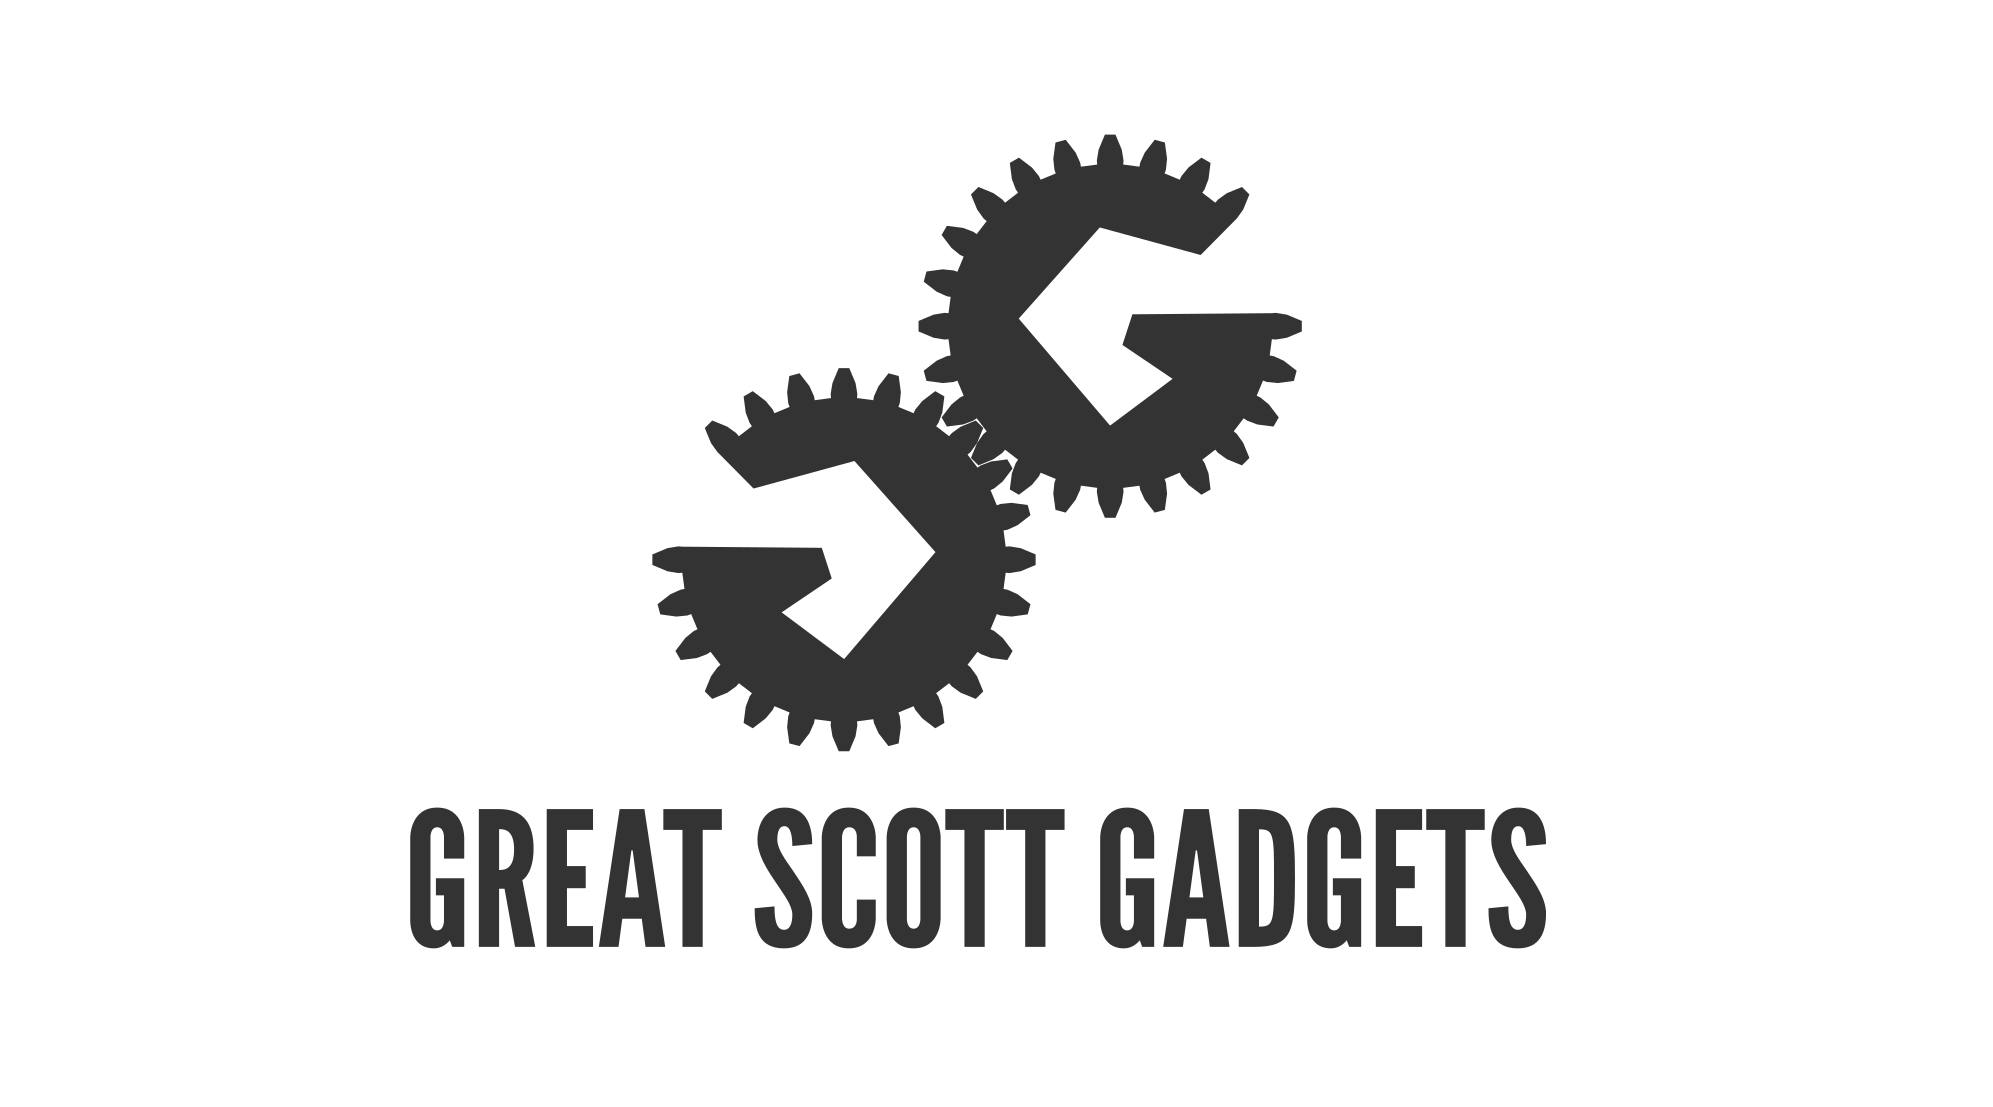 Great Scott Gadgets